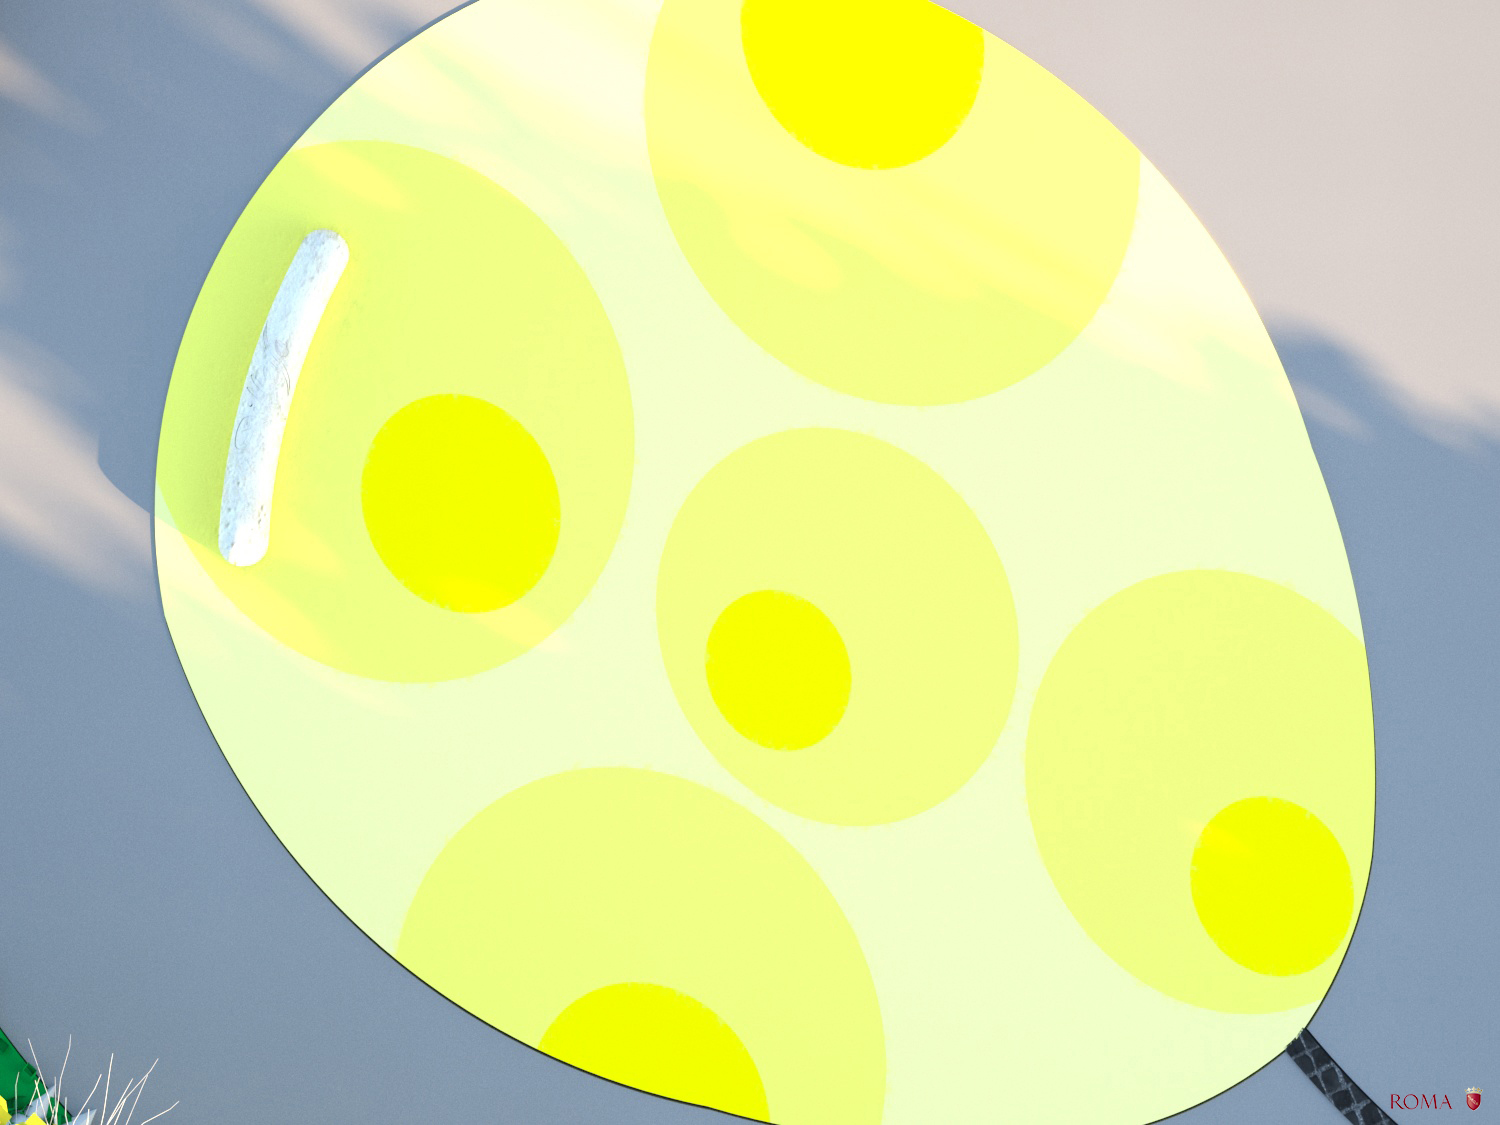 Daytime view from above of the yellow balloon Roma Capitale - Tommaso Di Pierro}